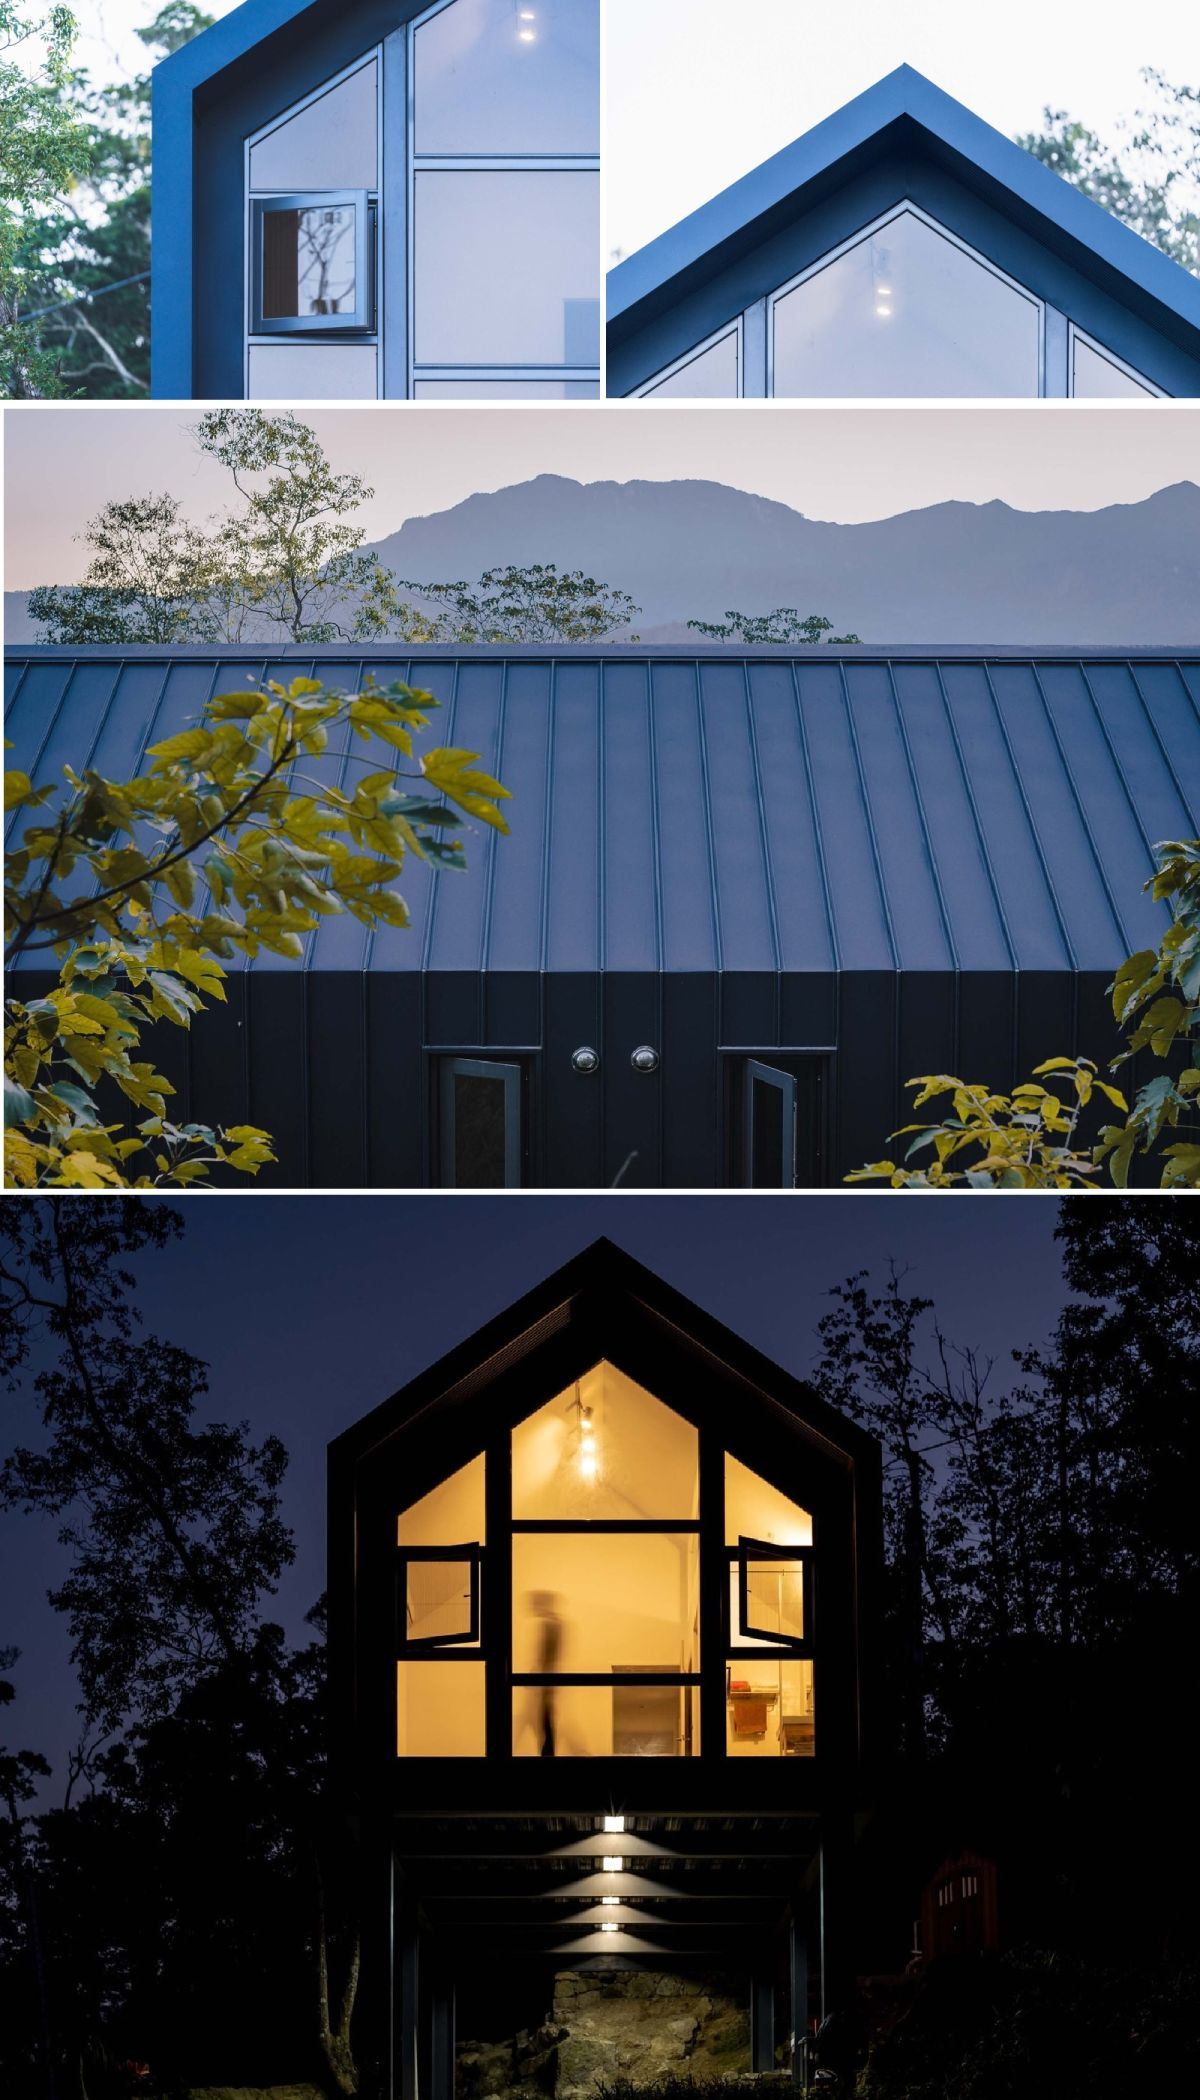 The double pitched roof gives the house a cute look while also being practical in this climate